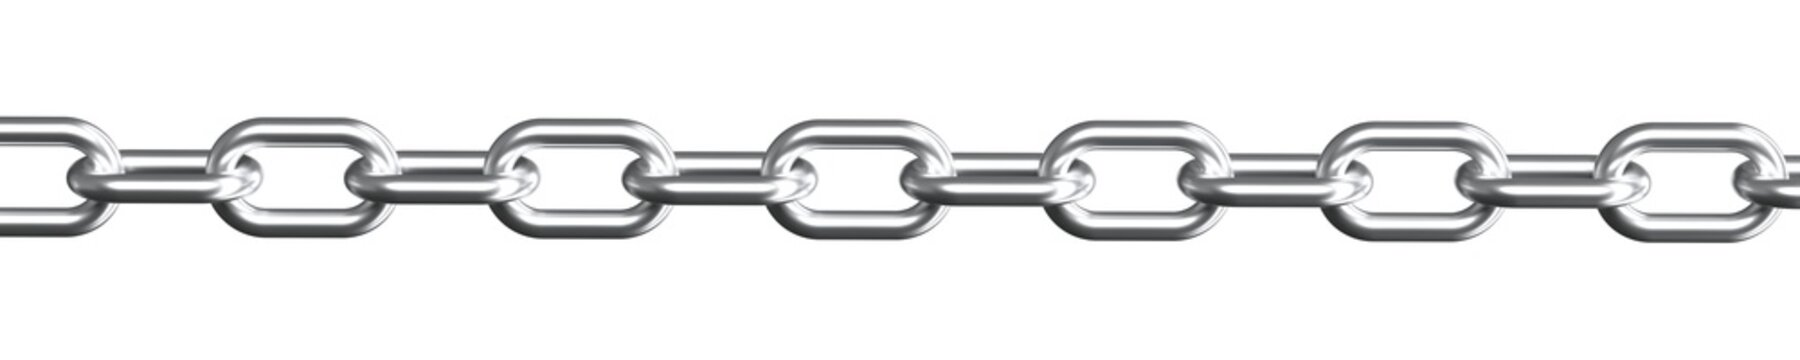 Chain isolated 3d rendering